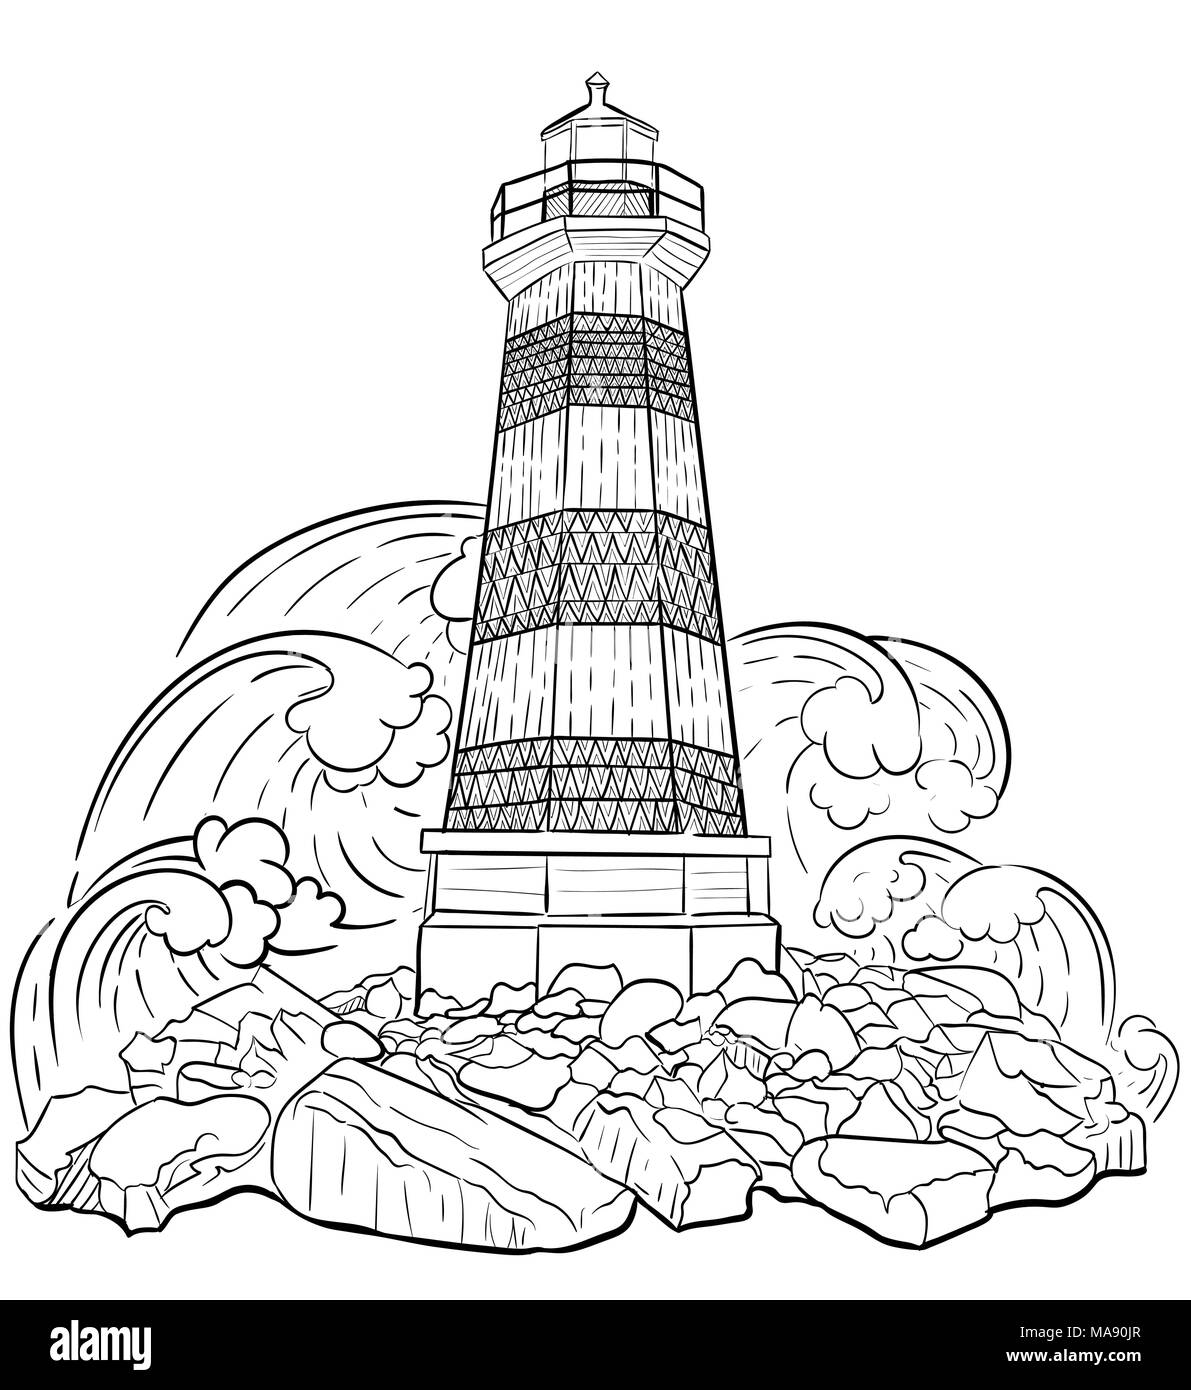 Hand Drawn Artistically Ethnic Ornamental Patterned Lighthouse Zentangle Tribal Style For Adult Coloring Book